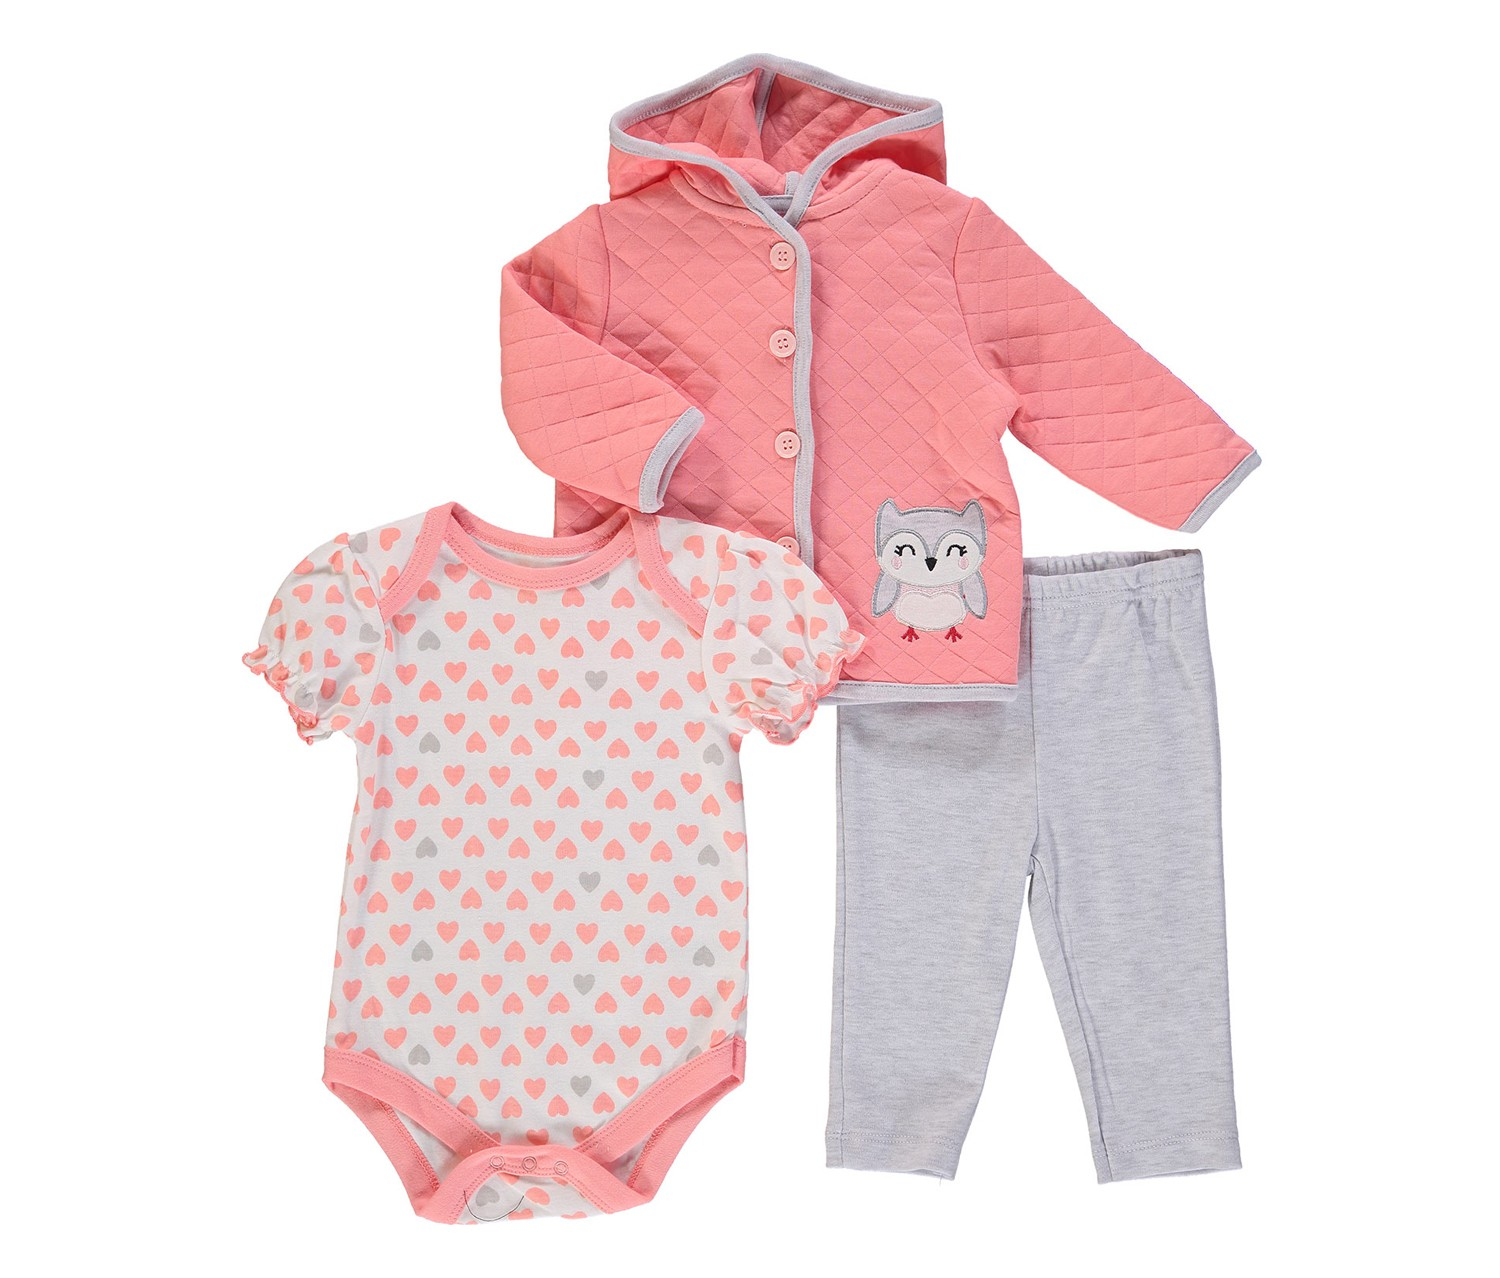 645ac02d3298 Shop Rene Rofe Baby Girls  3 Piece Jacket Set With Bodysuit And ...